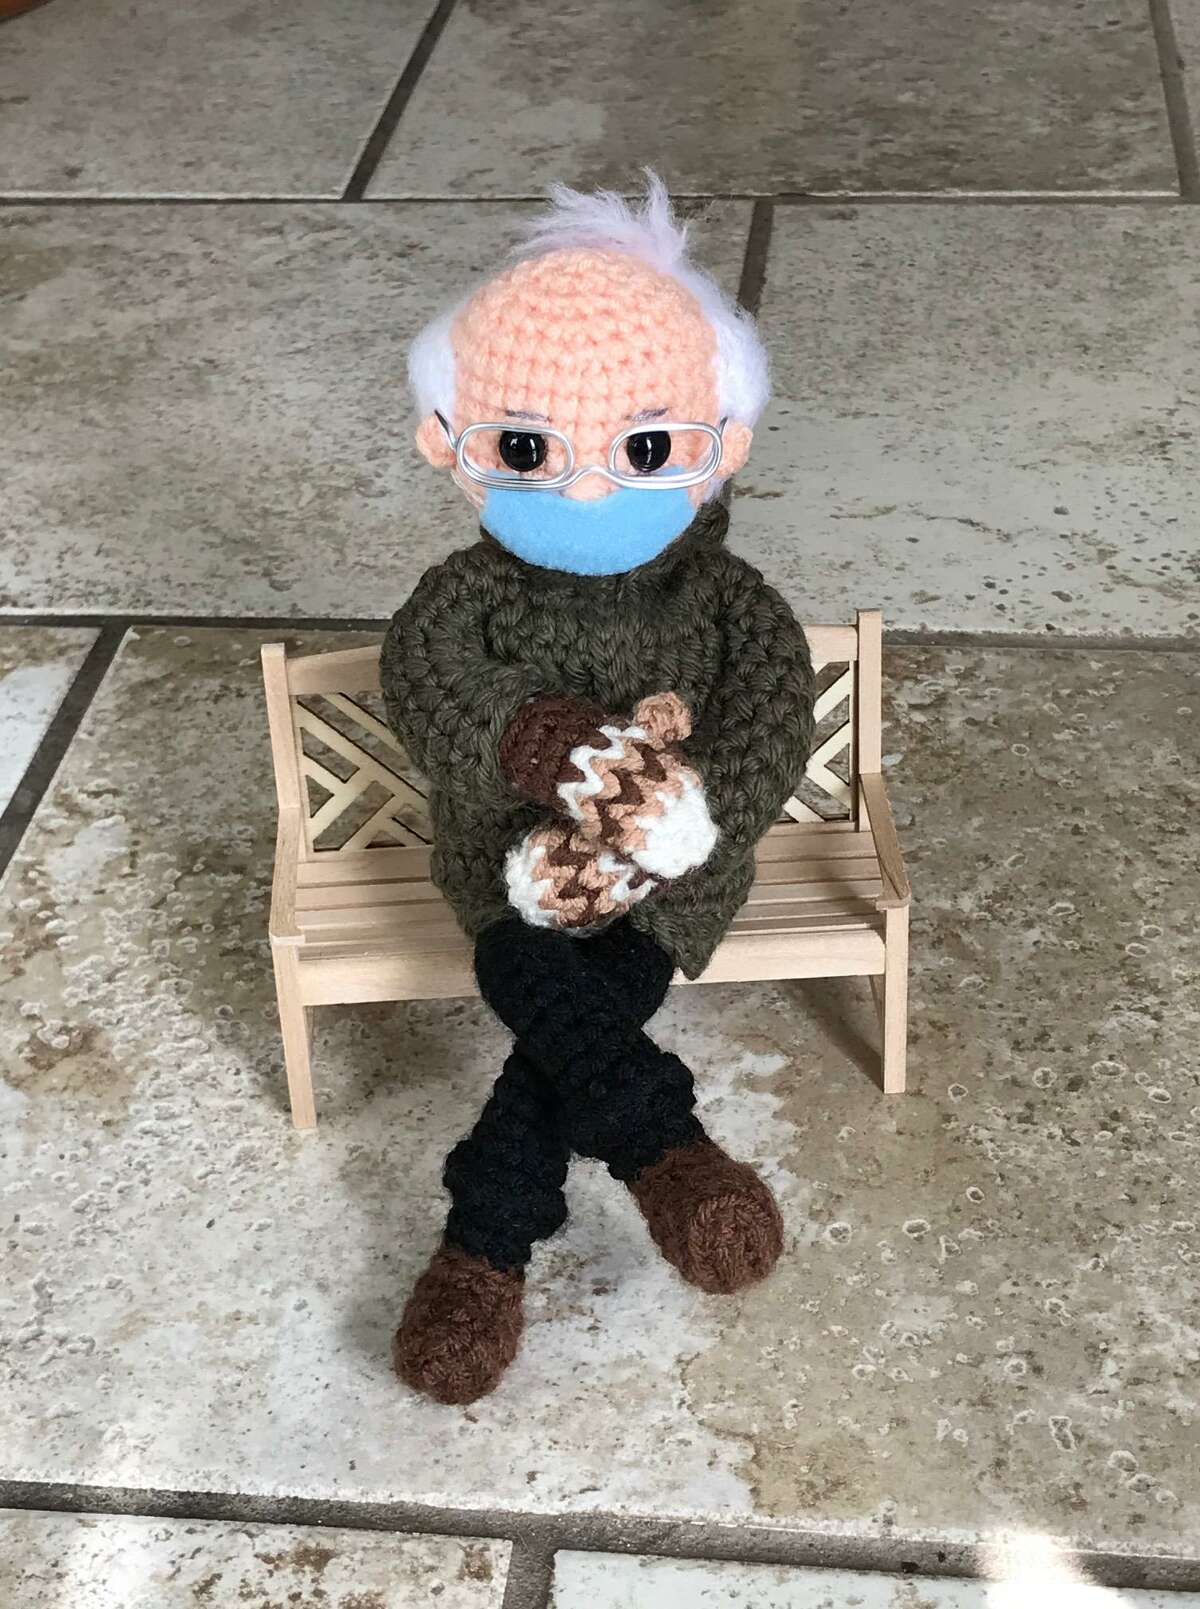 A crocheted Bernie Sanders doll by Tobey King in Corpus Christi. King made the doll and is selling the prototype on eBay to benefit Meals on Wheels.